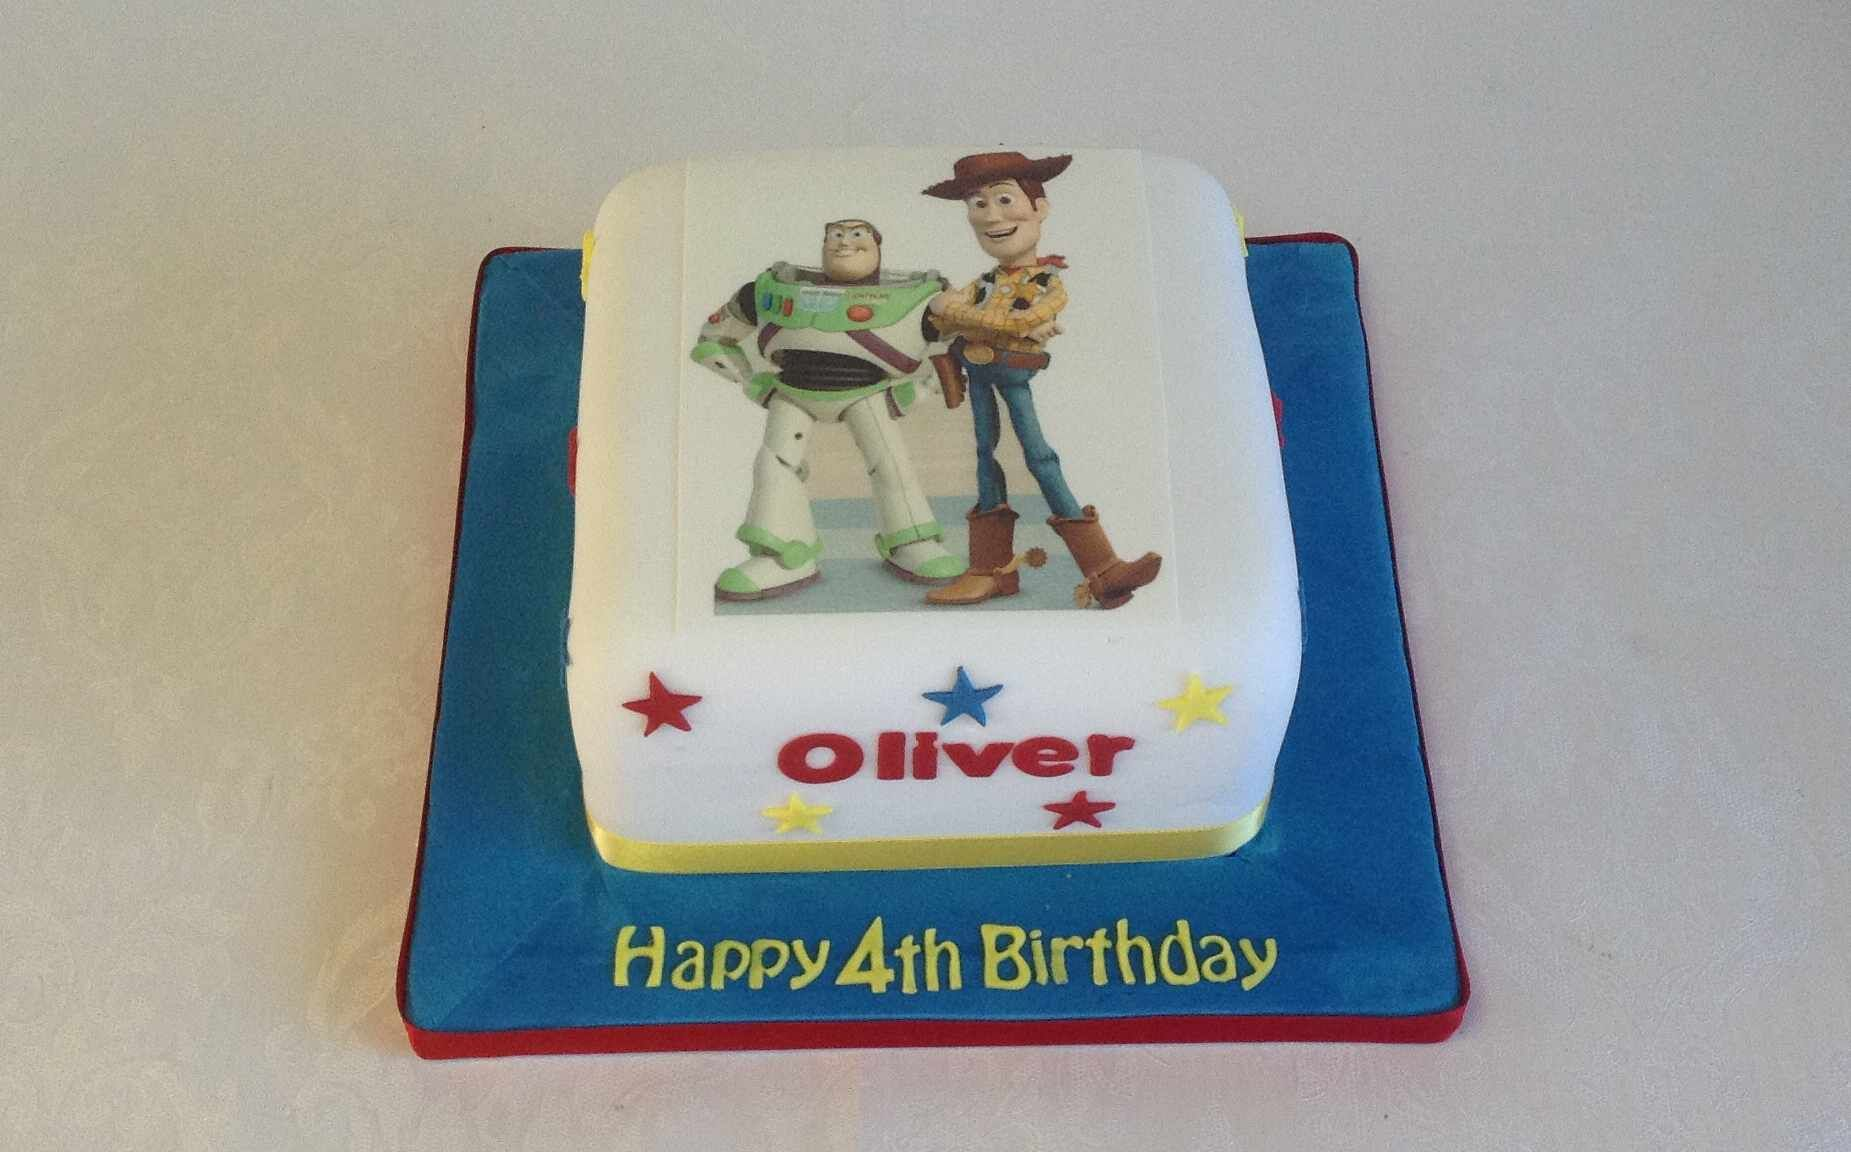 Buzz And Woody Edible Photo Cake Jpg 1851x1152 Toy Story Publix